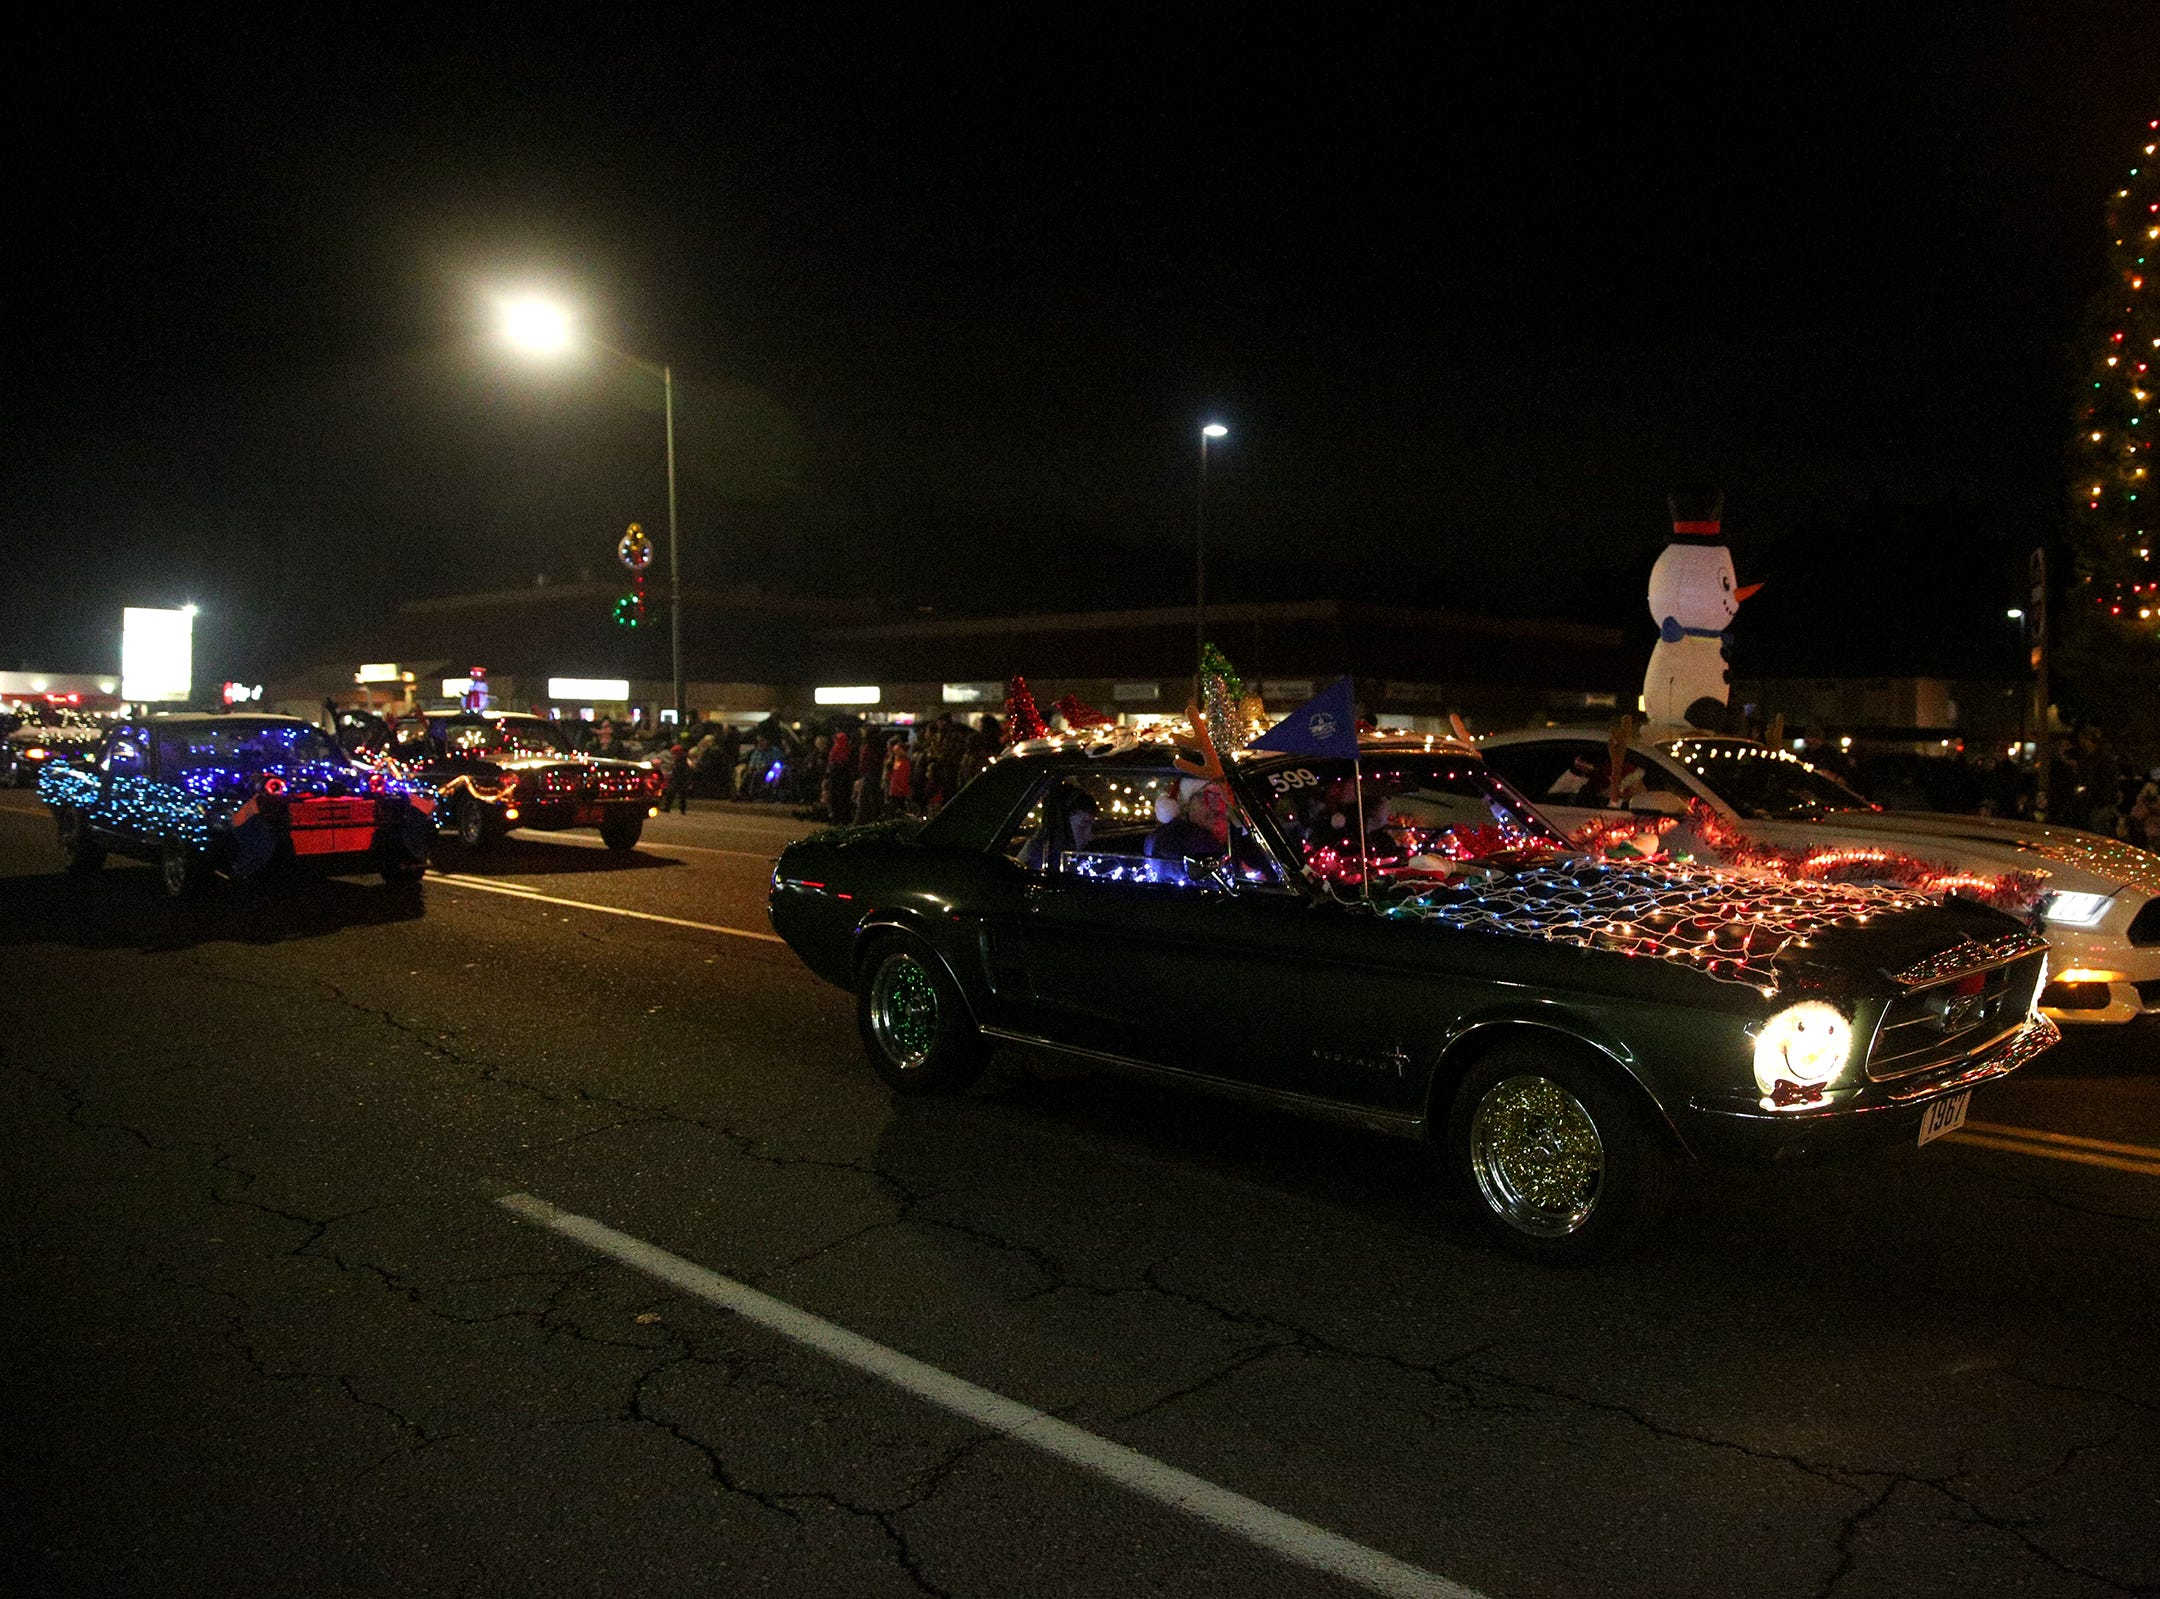 Cars are decorated with lights for the Keizer Holiday Lights Parade in Keizer on Saturday, Dec. 8, 2018.